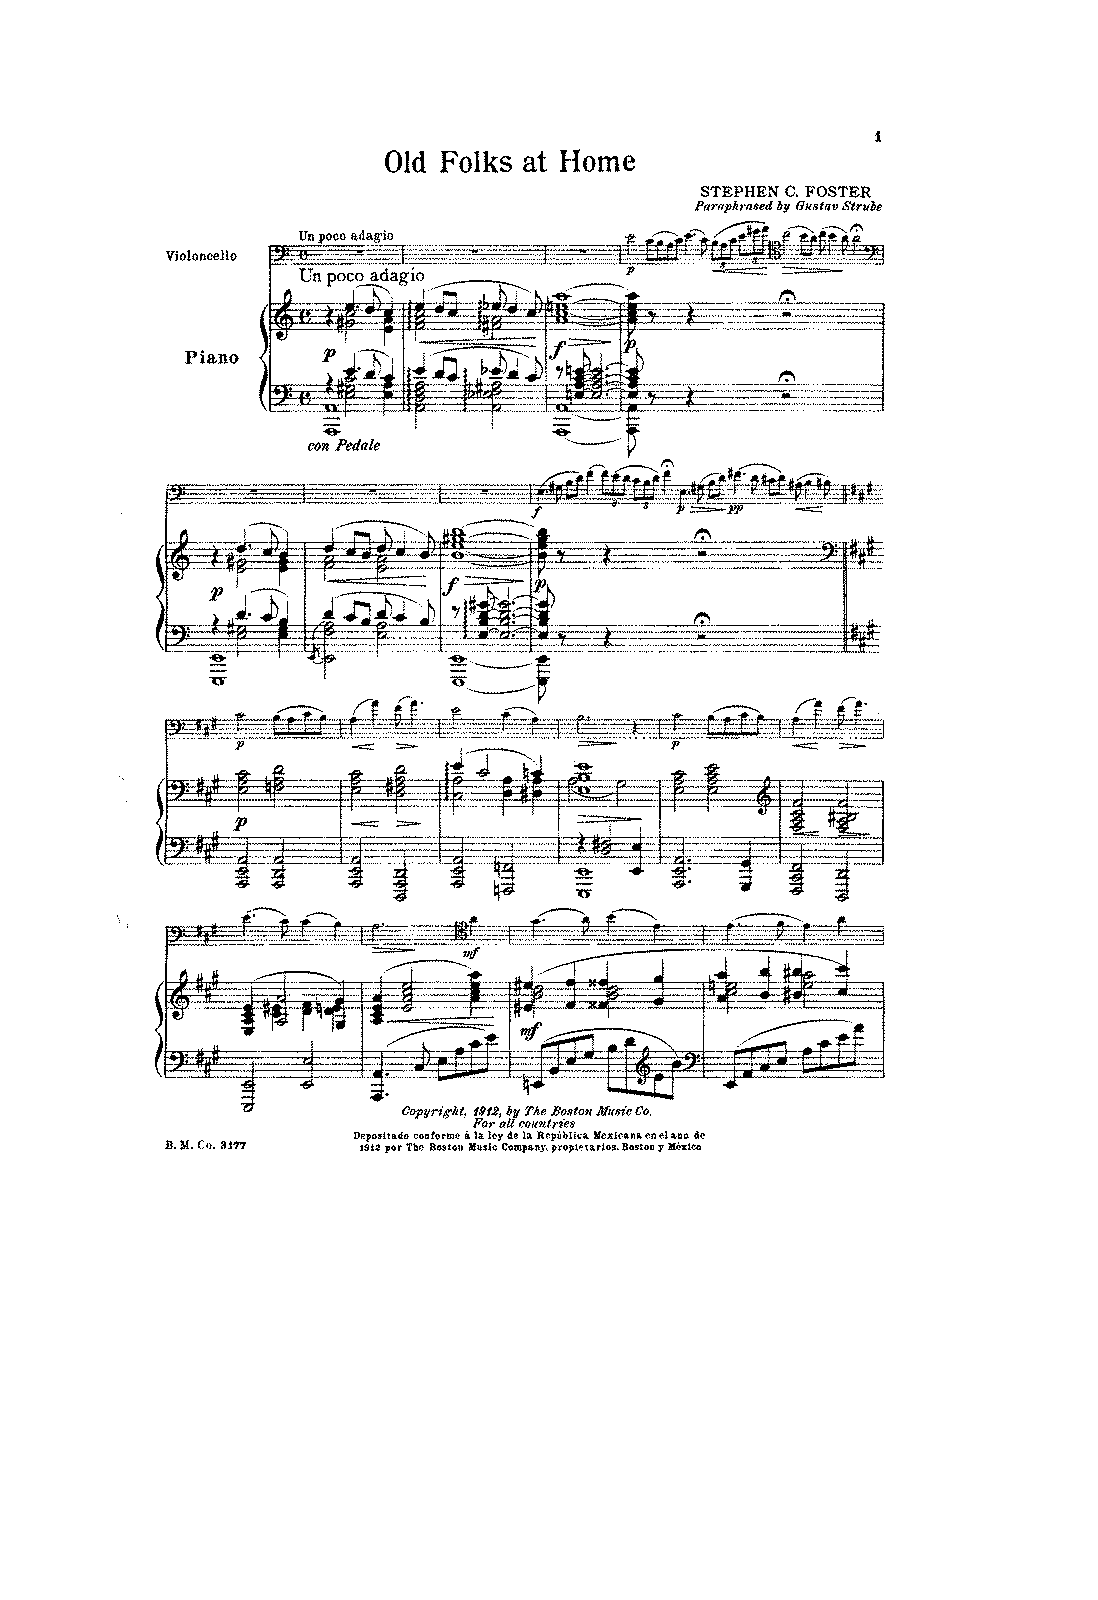 PMLP23988-Foster - Old folks at home for Cello and Piano (Strube) score.pdf